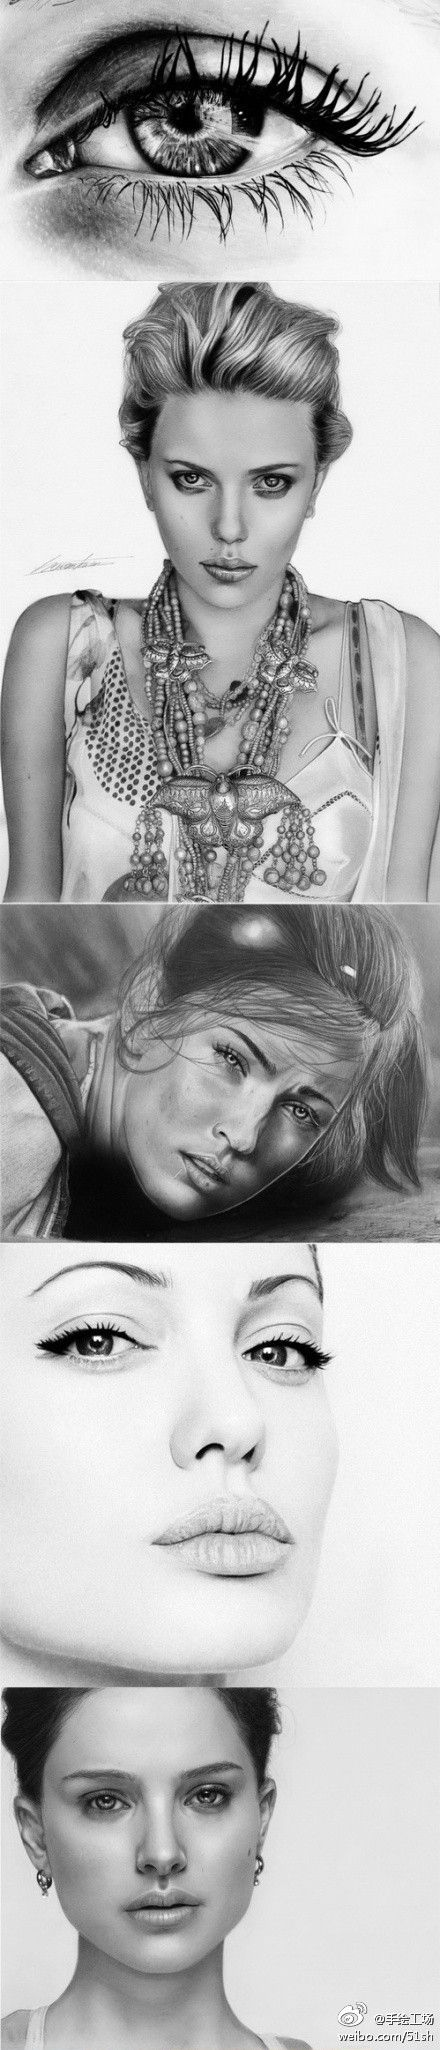 can you believe that these are drawingsDrawing Photos, Amazing Drawings, Drawings Photos Perfect, Drawing Art, Drawing People, Pencil Drawings Photos, Amazing Pencil Drawings, Awesome Drawing, Art Sketches Drawing